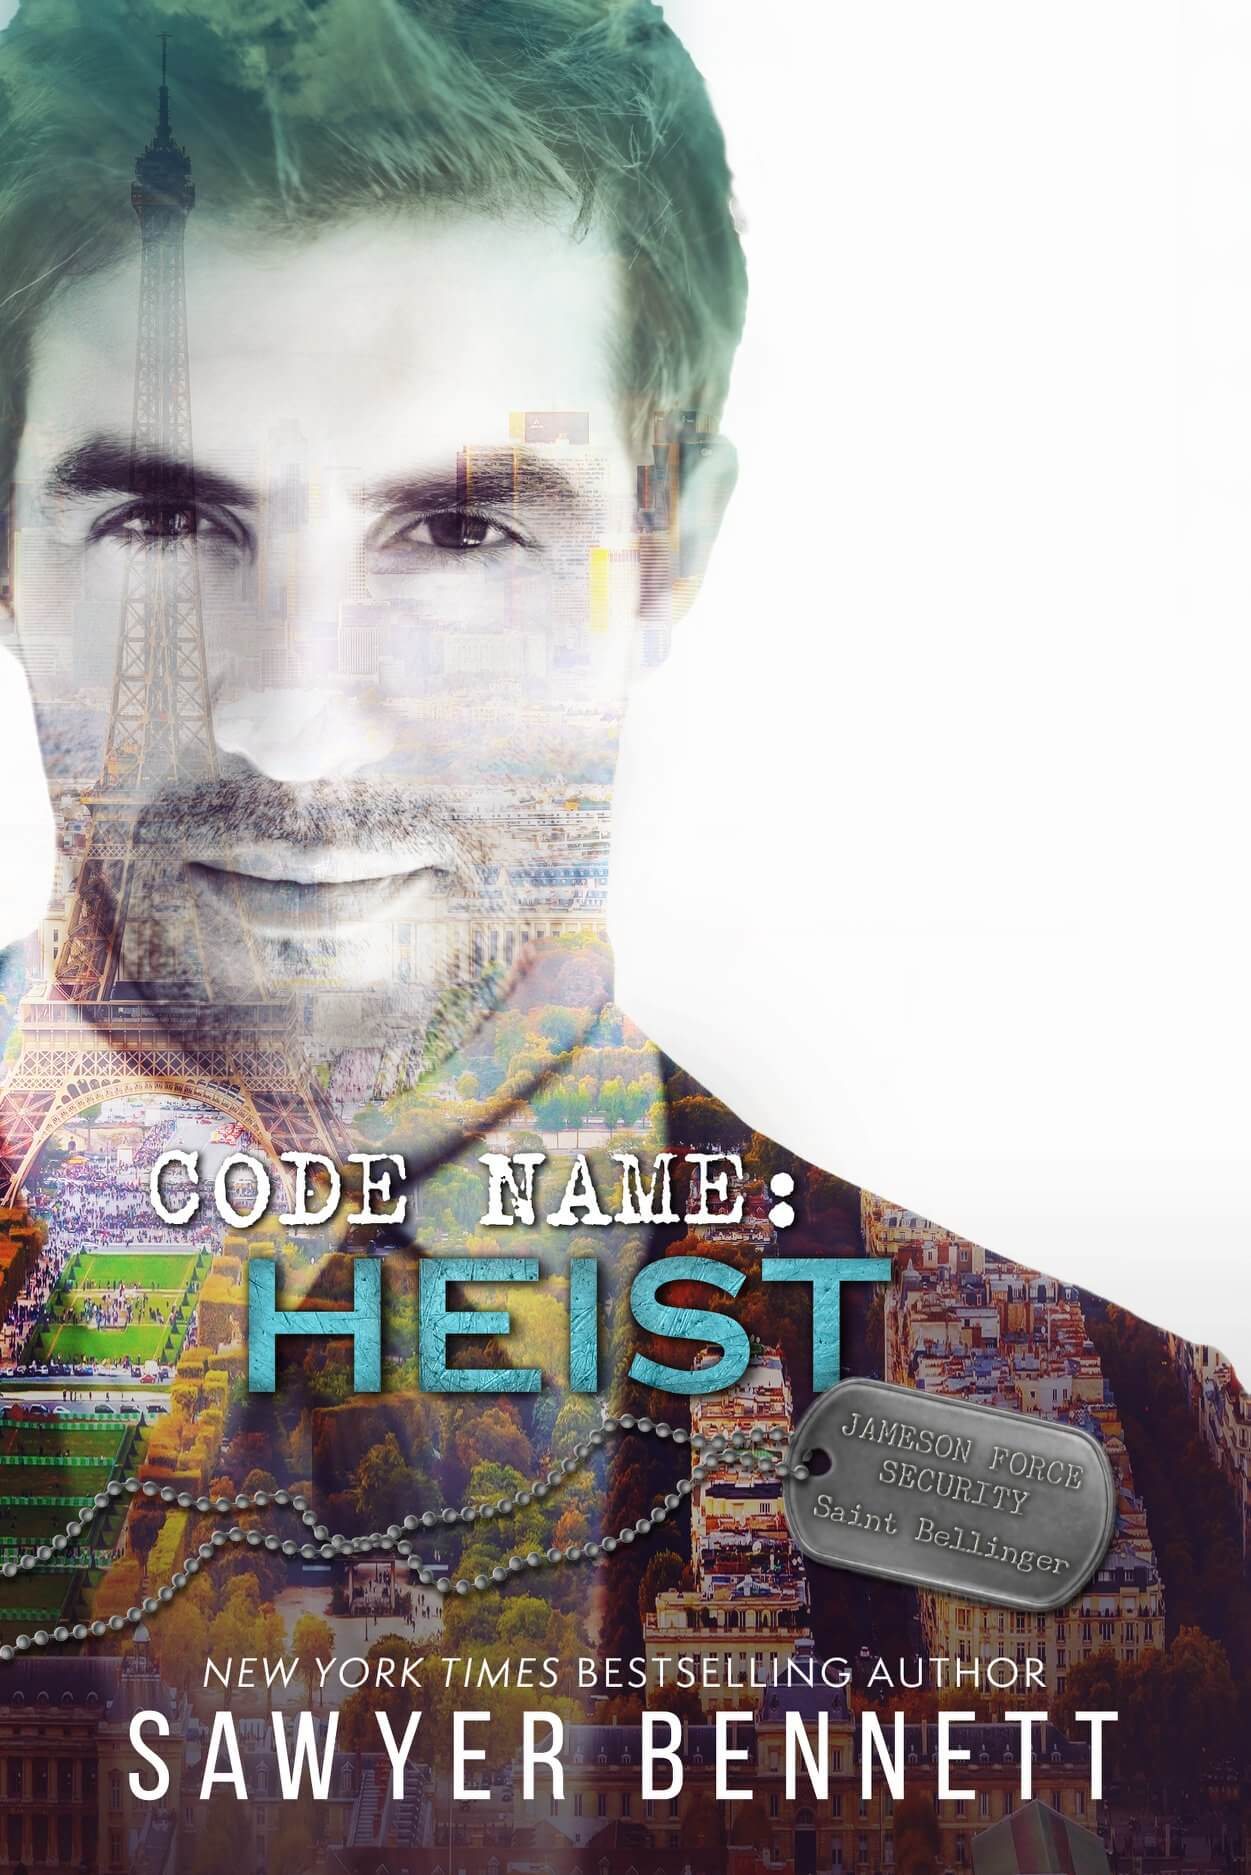 Code Name: Heist by Sawyer Bennett